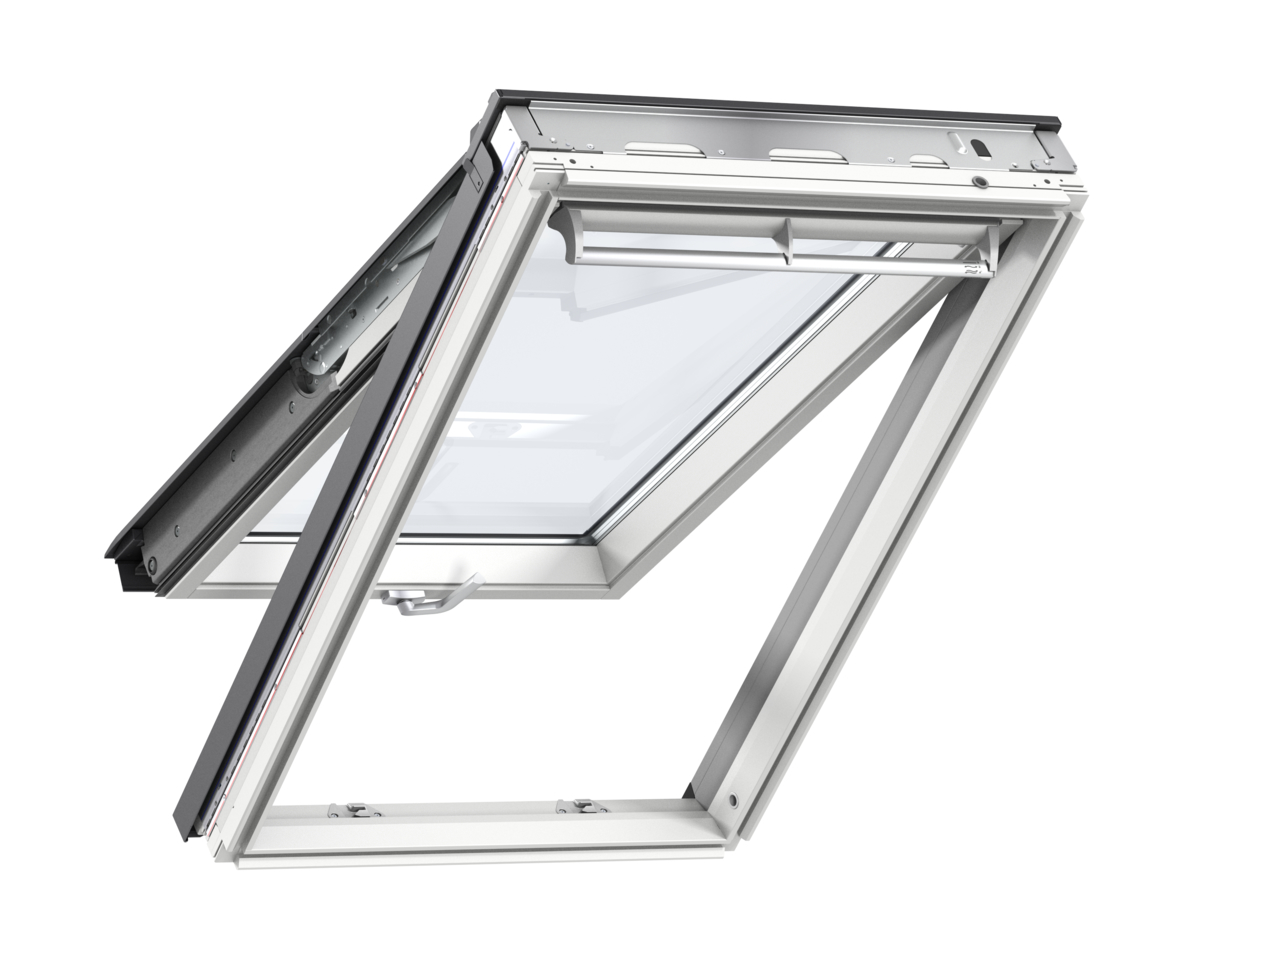 Velux GPL PK08 940 x 1400mm Top Hung 60Pane Roof Window - White Painted